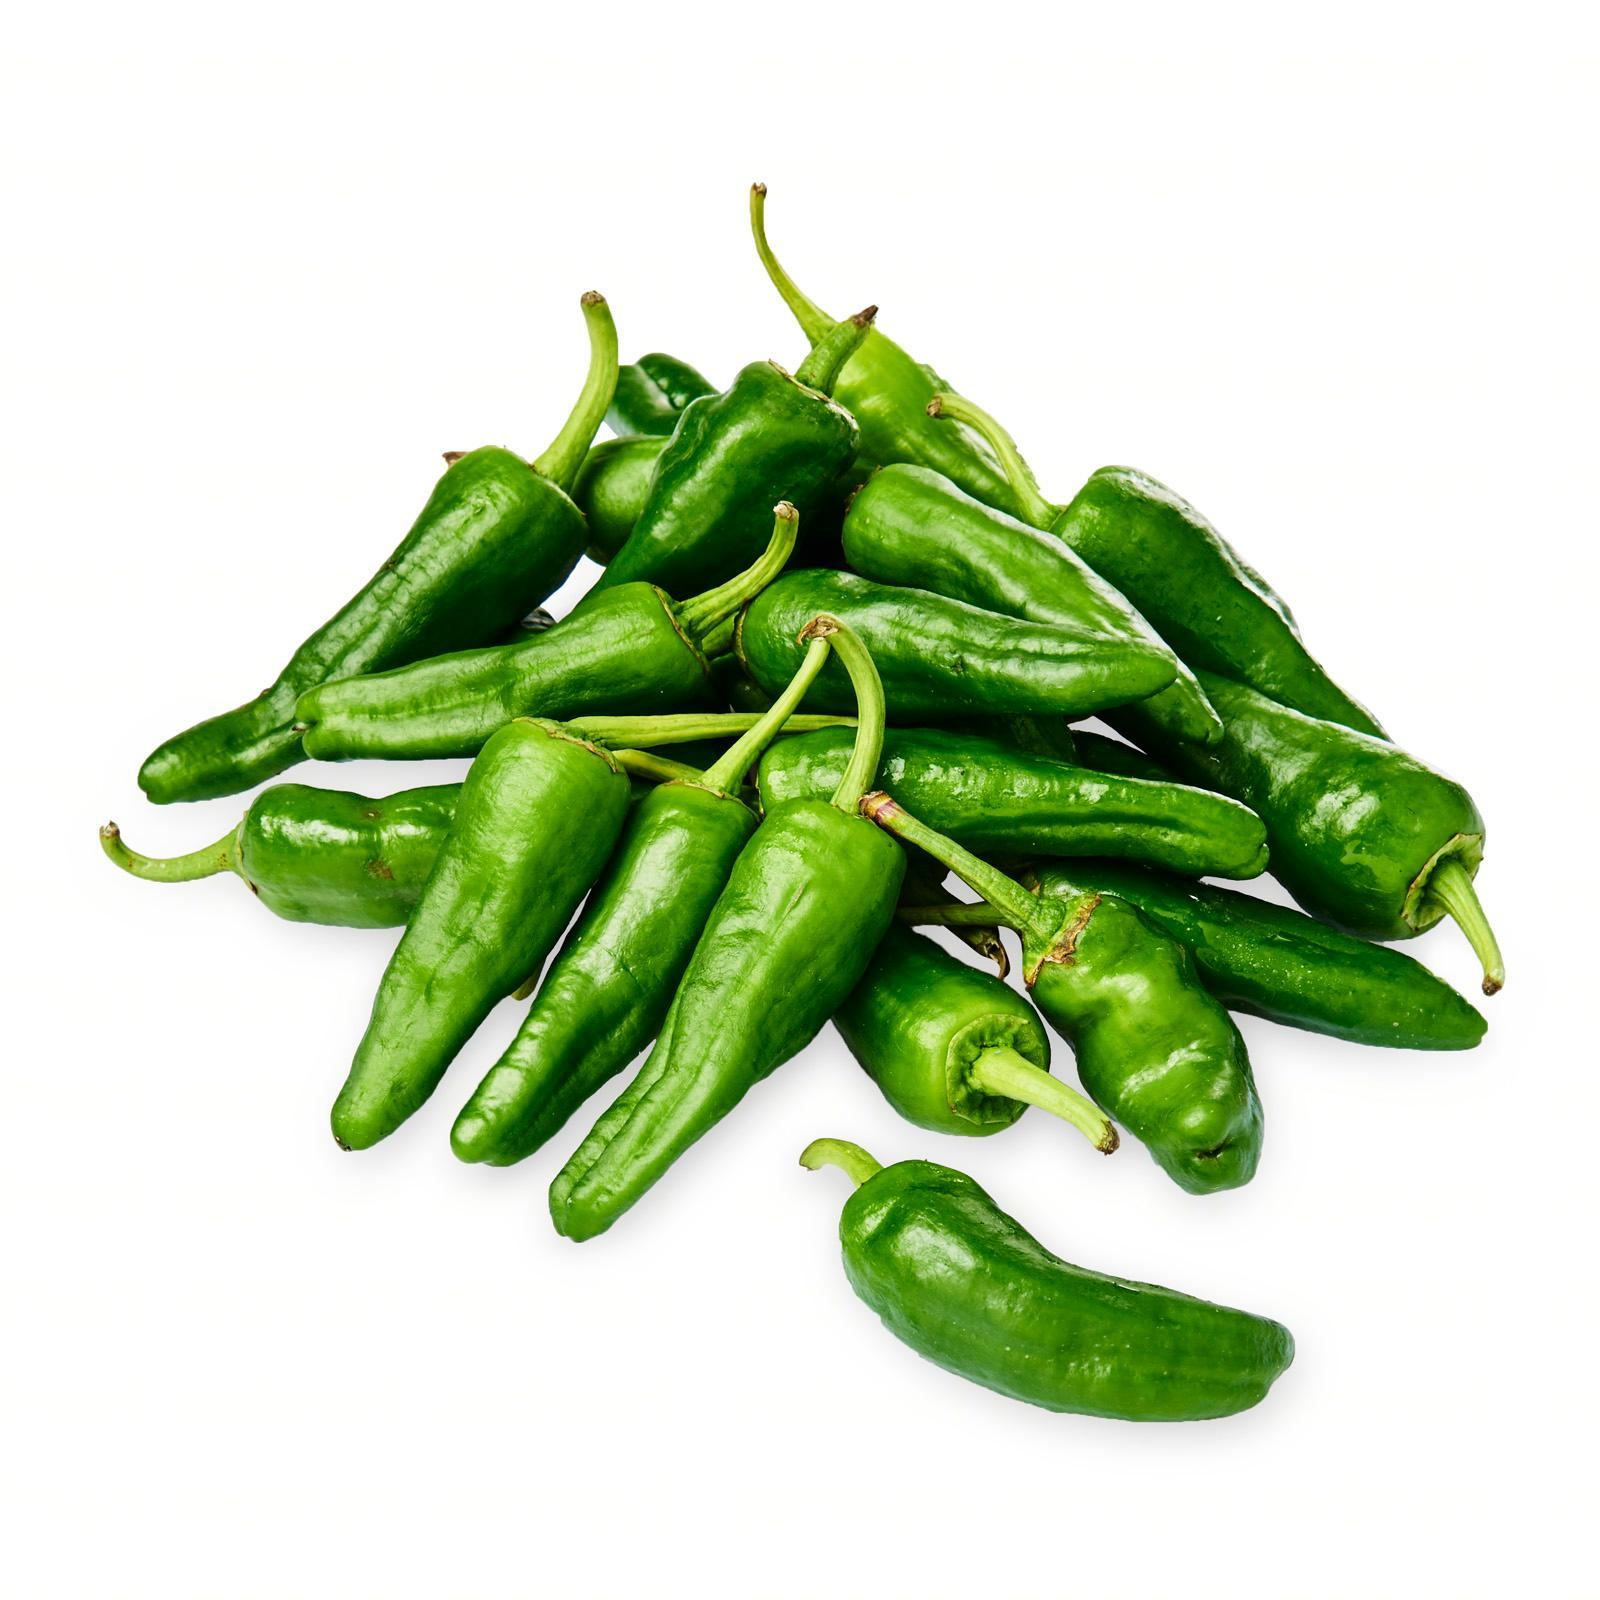 Spain Pimientos Padron Peppers